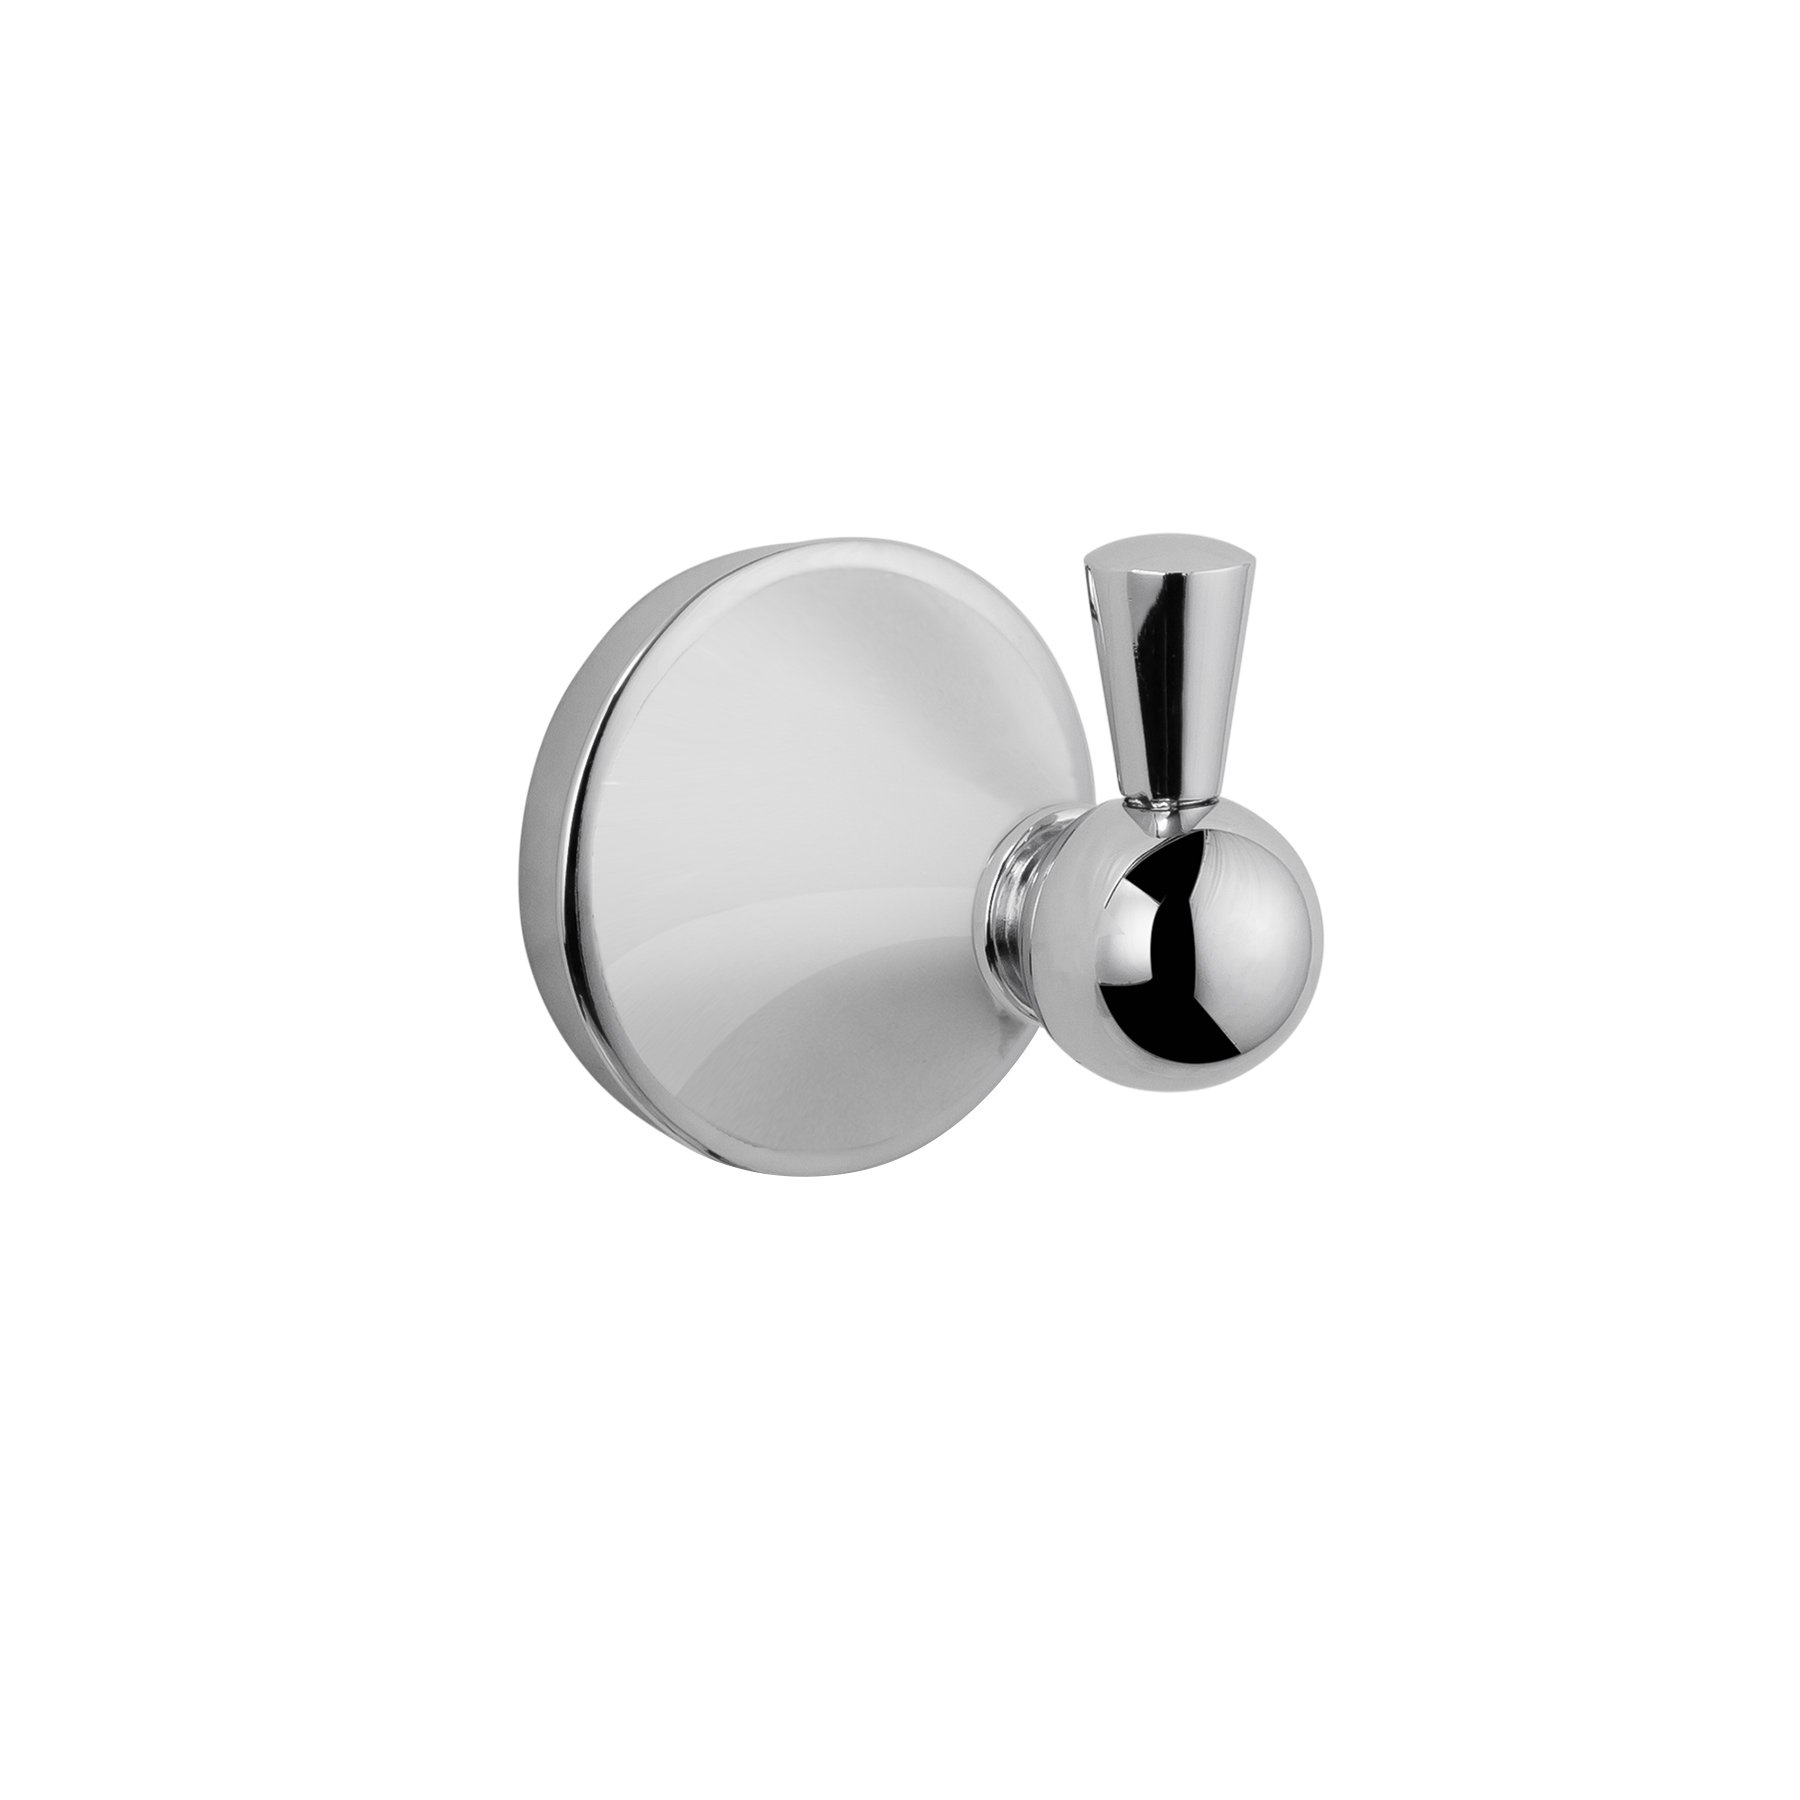 MAYKKE Charlotte Robe and Towel Hook | Modern Solid Brass Wall Mount Clothes Hanger for Bathroom Lavatory, Shower, Kitchen | Unique Round Ball Accent Design | Polished Chrome, XYA1030101